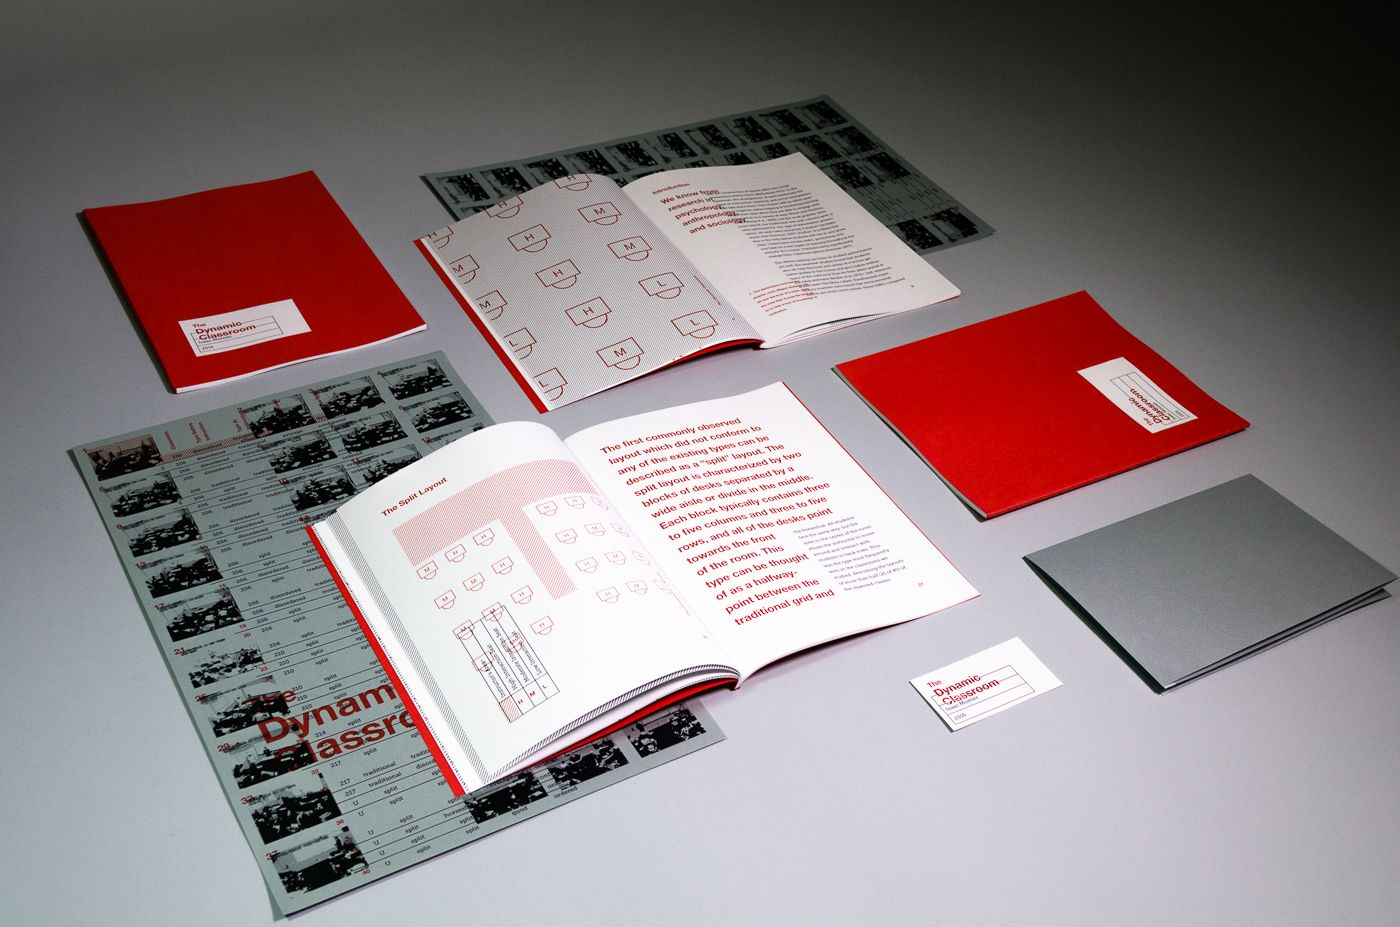 Layout of multiple books and posters